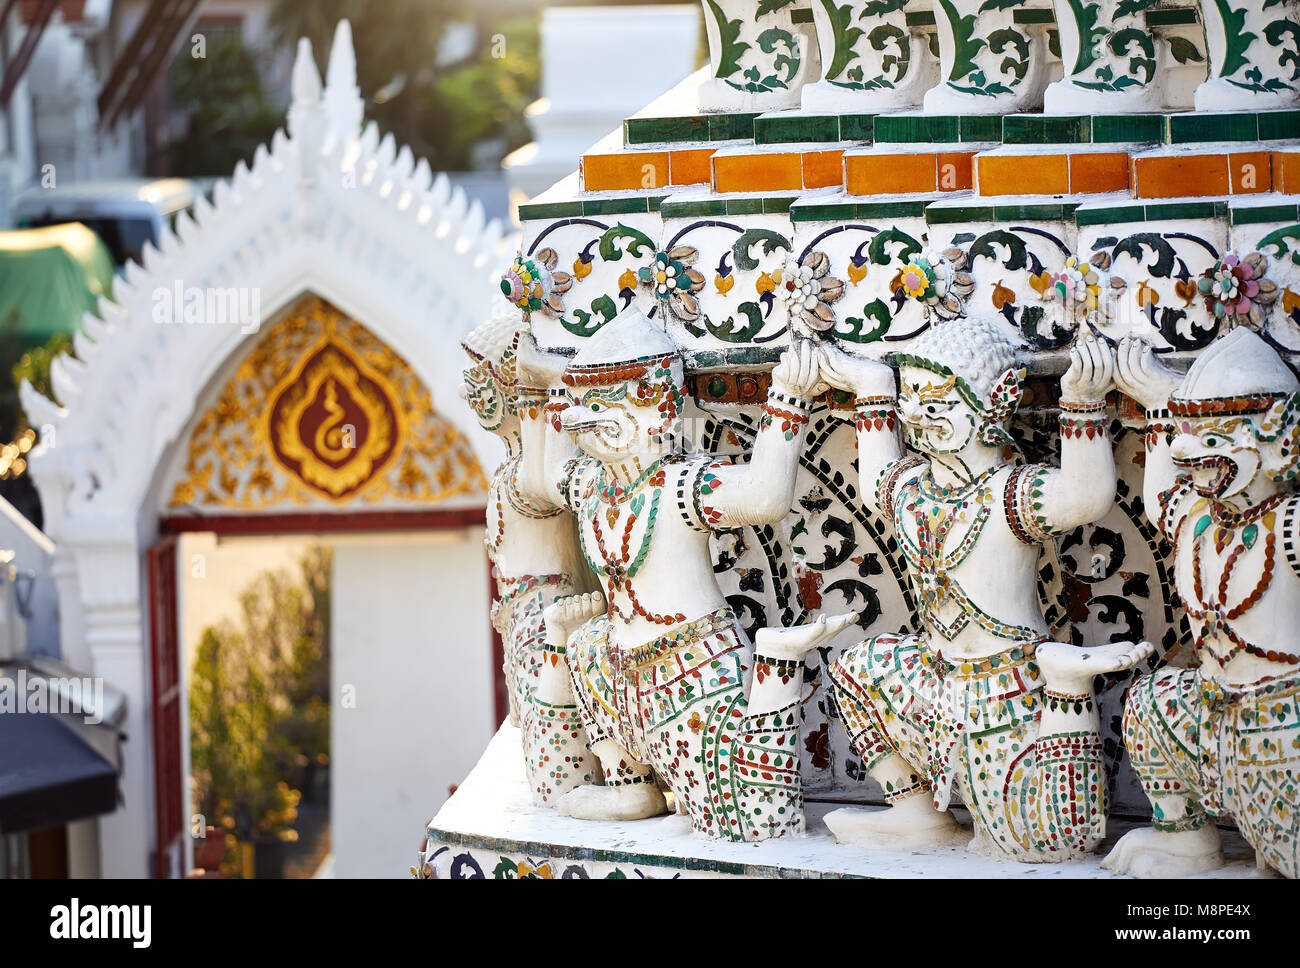 Stone statue of mythological creatures of Buddhist Temple Wat Arun in Bangkok, Thailand - Stock Image